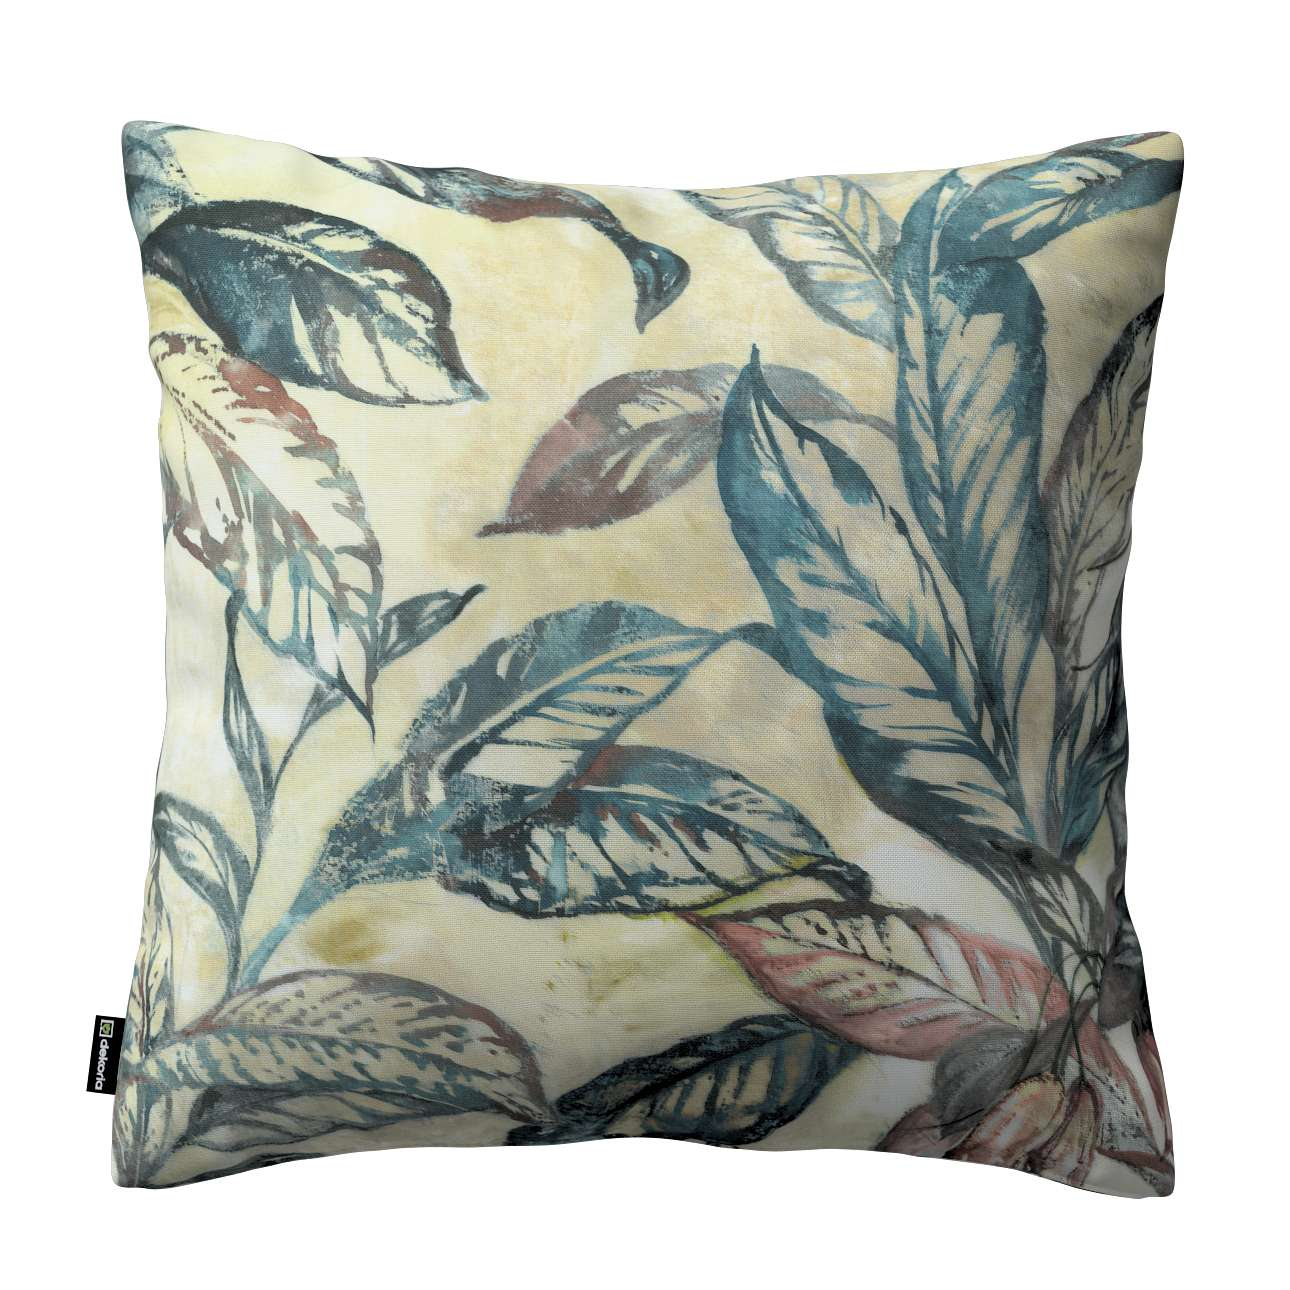 Kinga cushion cover in collection Abigail, fabric: 143-08